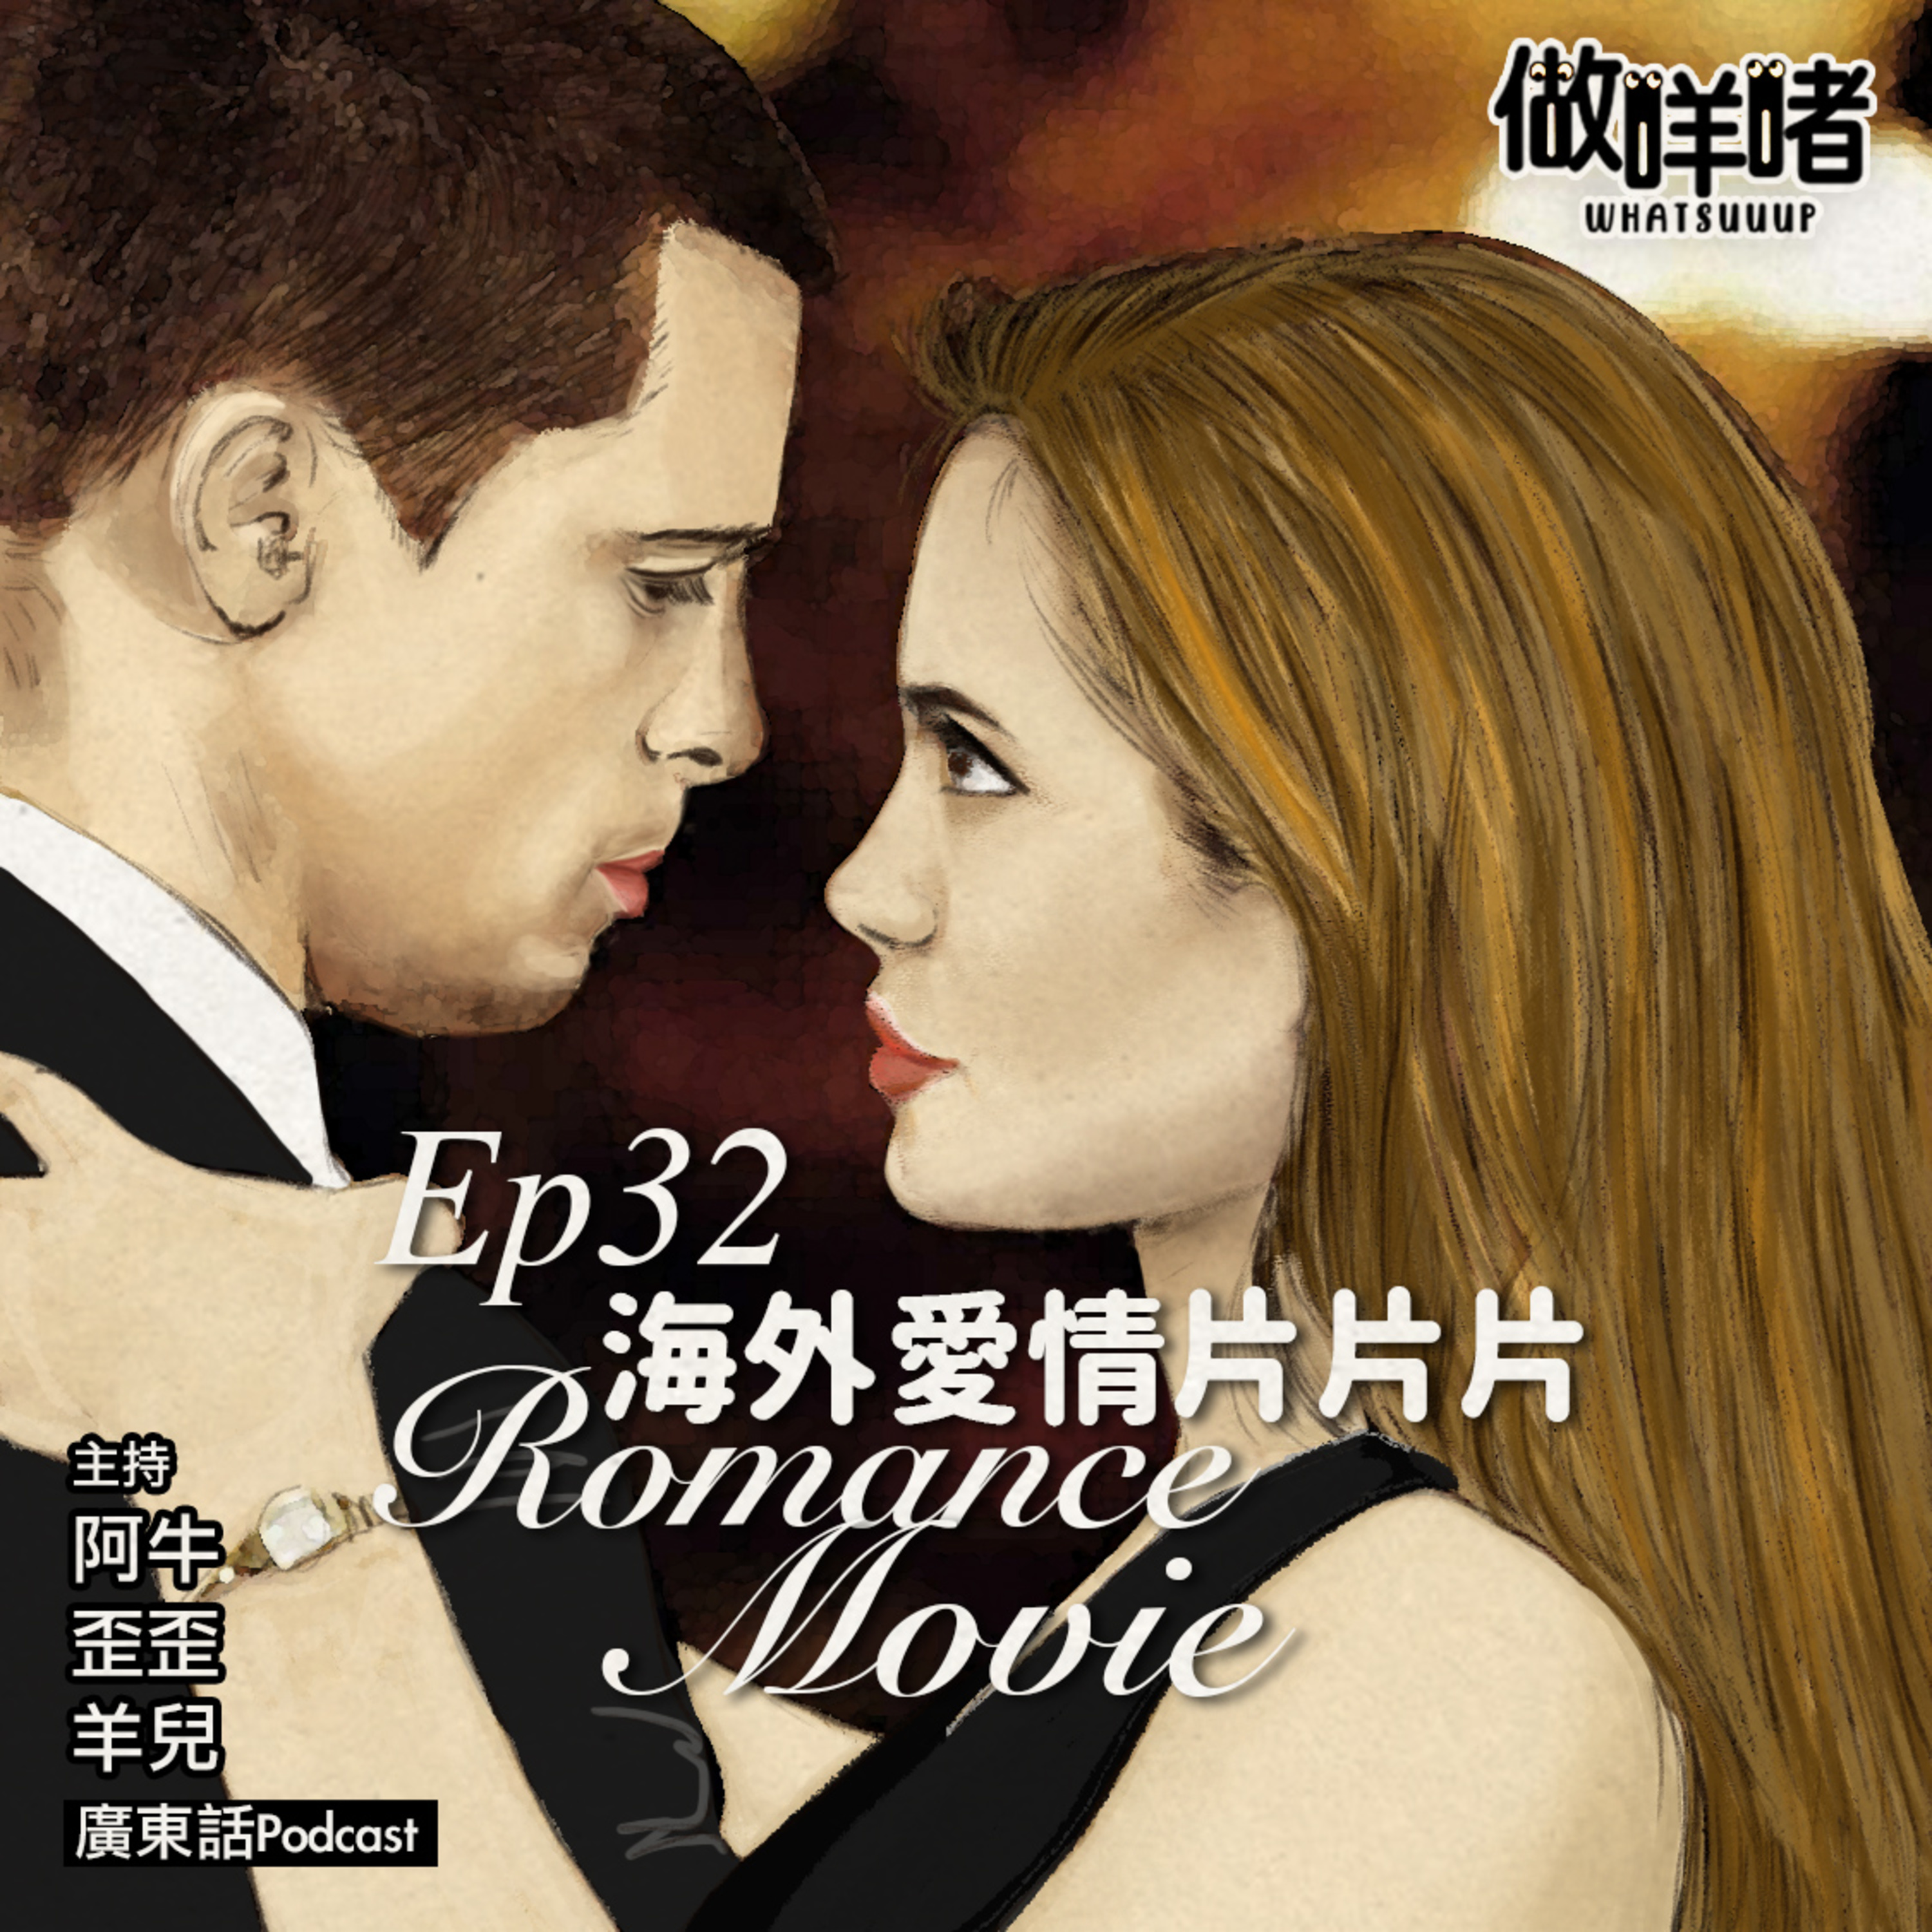 EP32《做咩啫》海外愛情片片片 Our foreign Love Movies| 廣東話Podcast